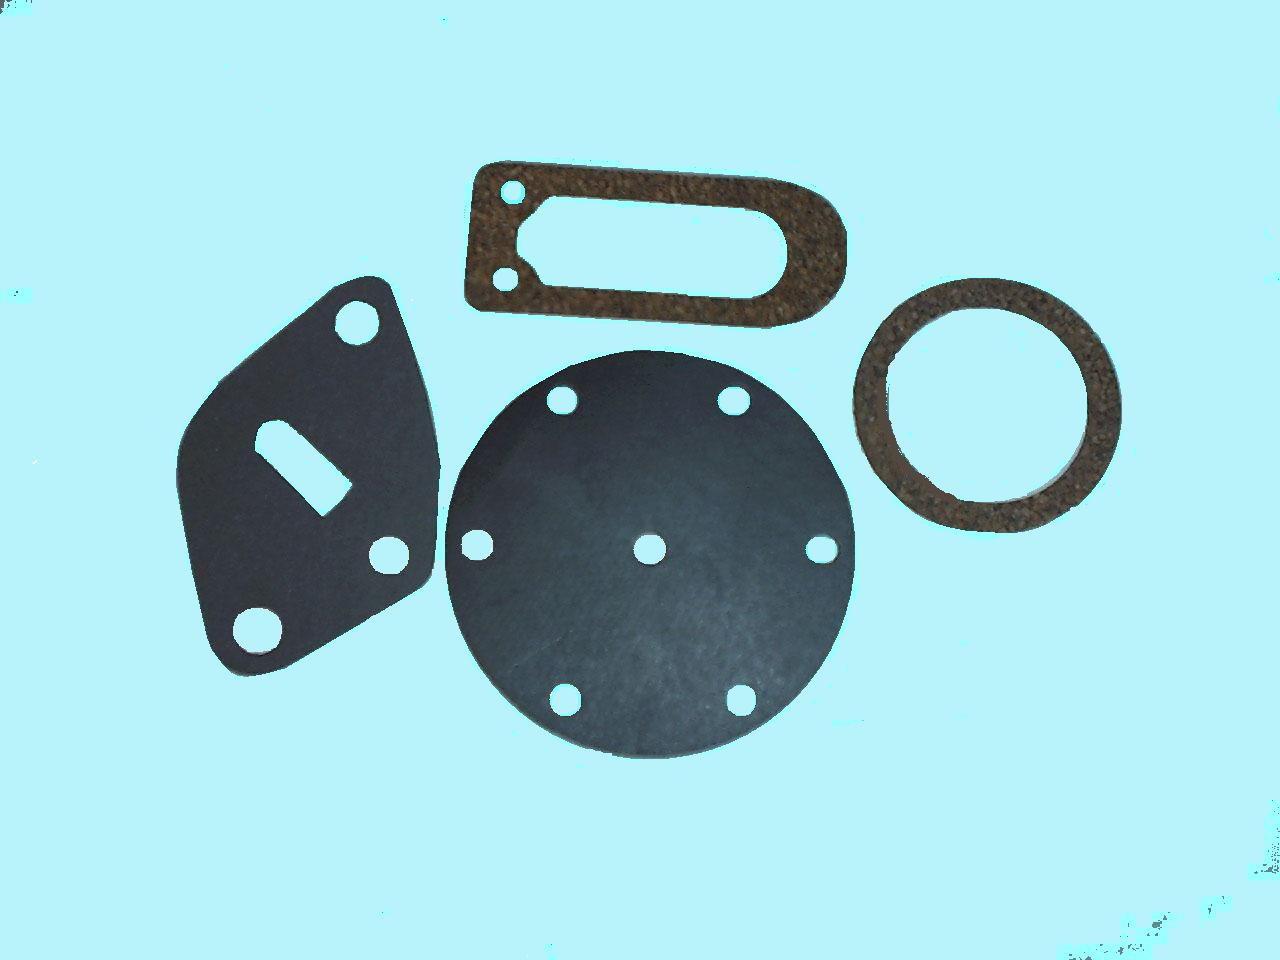 Fuel pumps ac model b fuel pump gasket and diaphragm set with or without screen ccuart Gallery